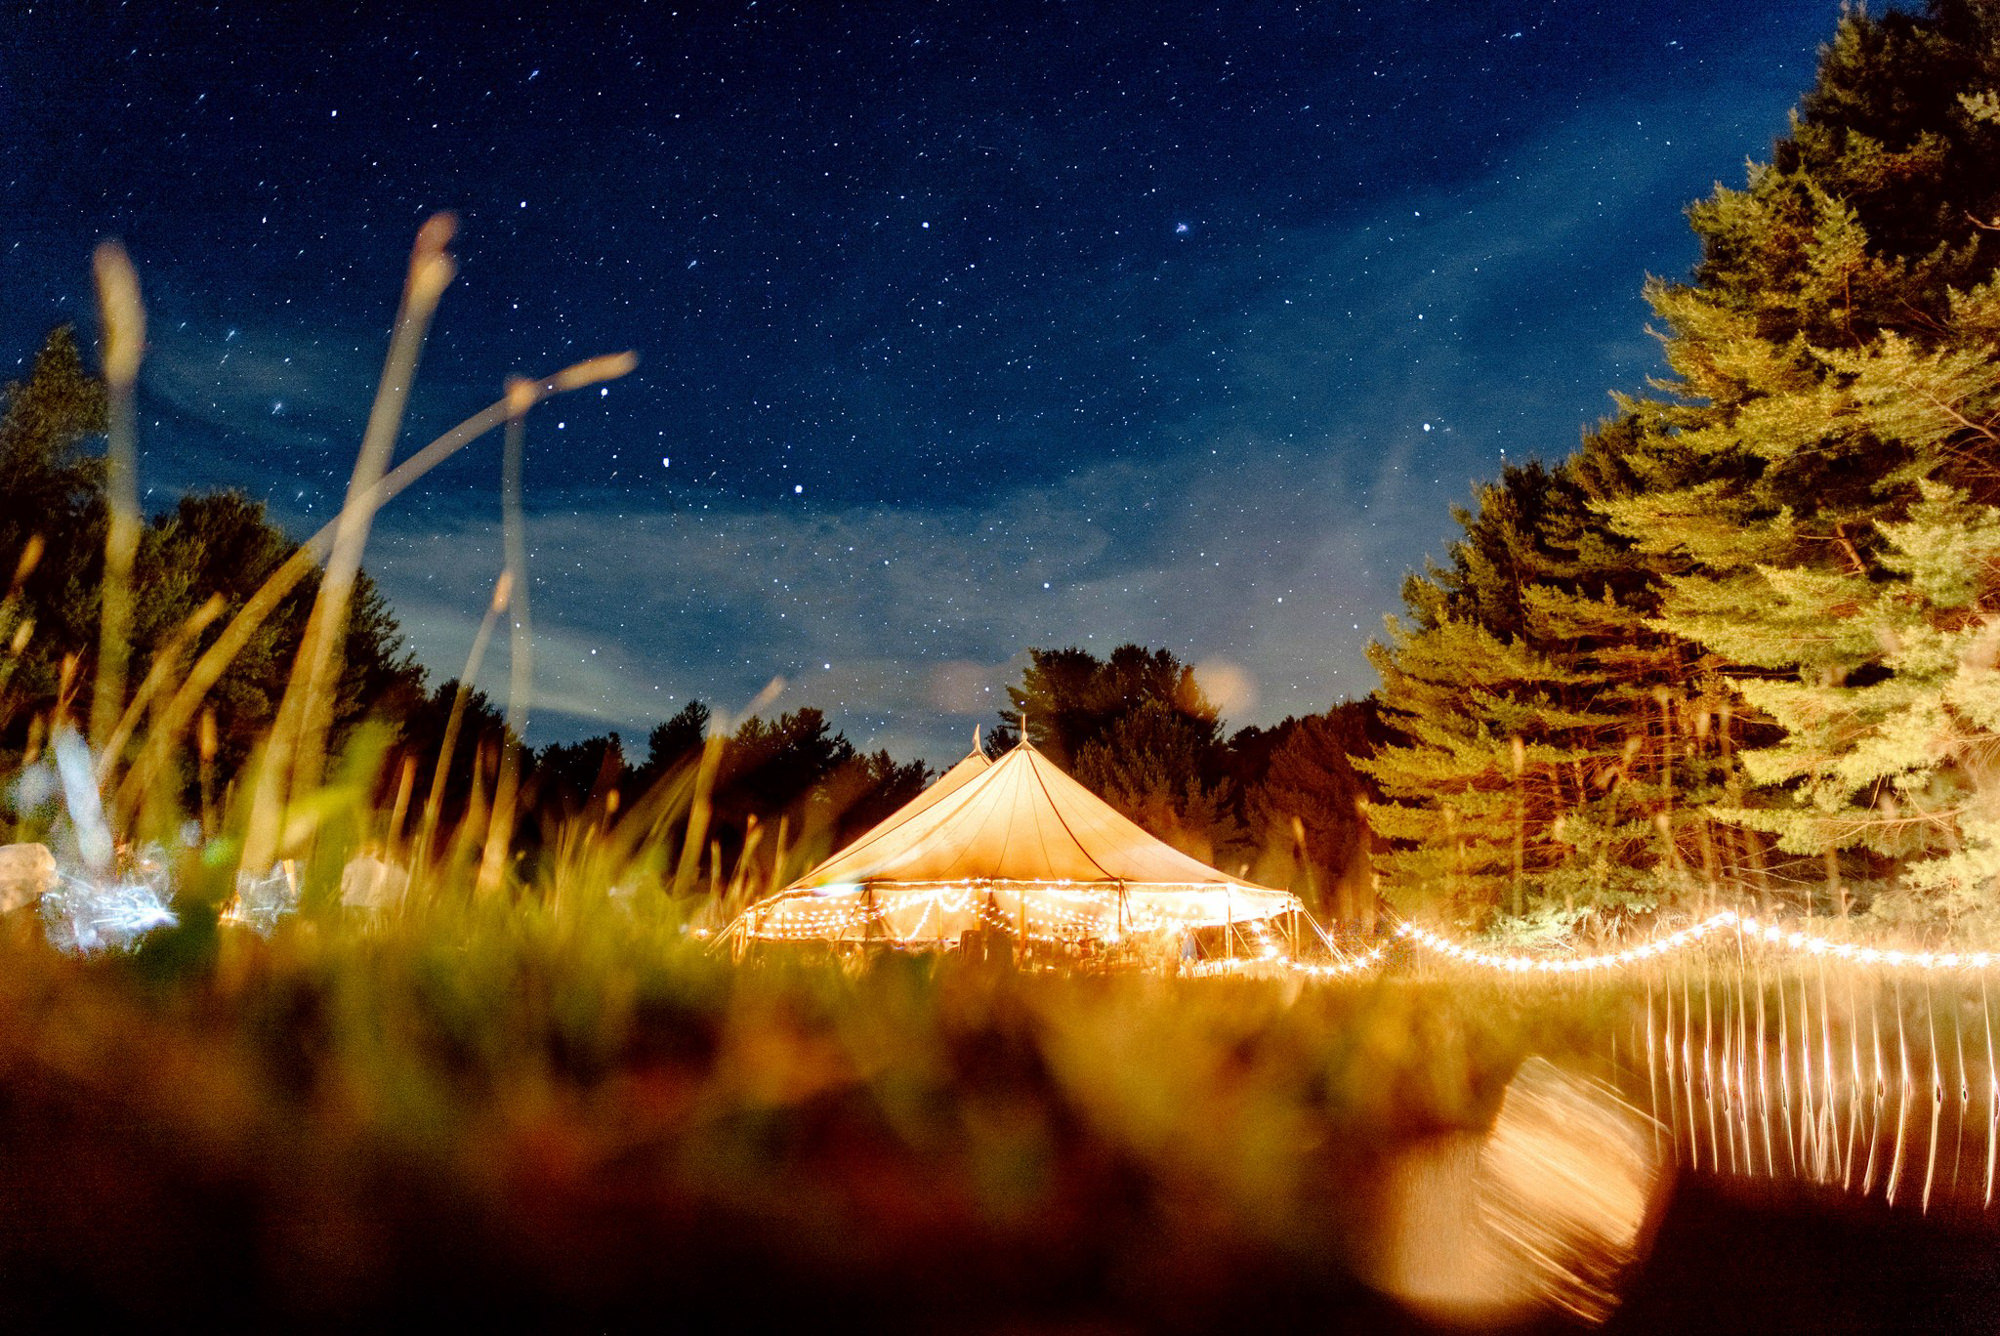 Lighted tent reception with stars above - Photo by Benj Haisch